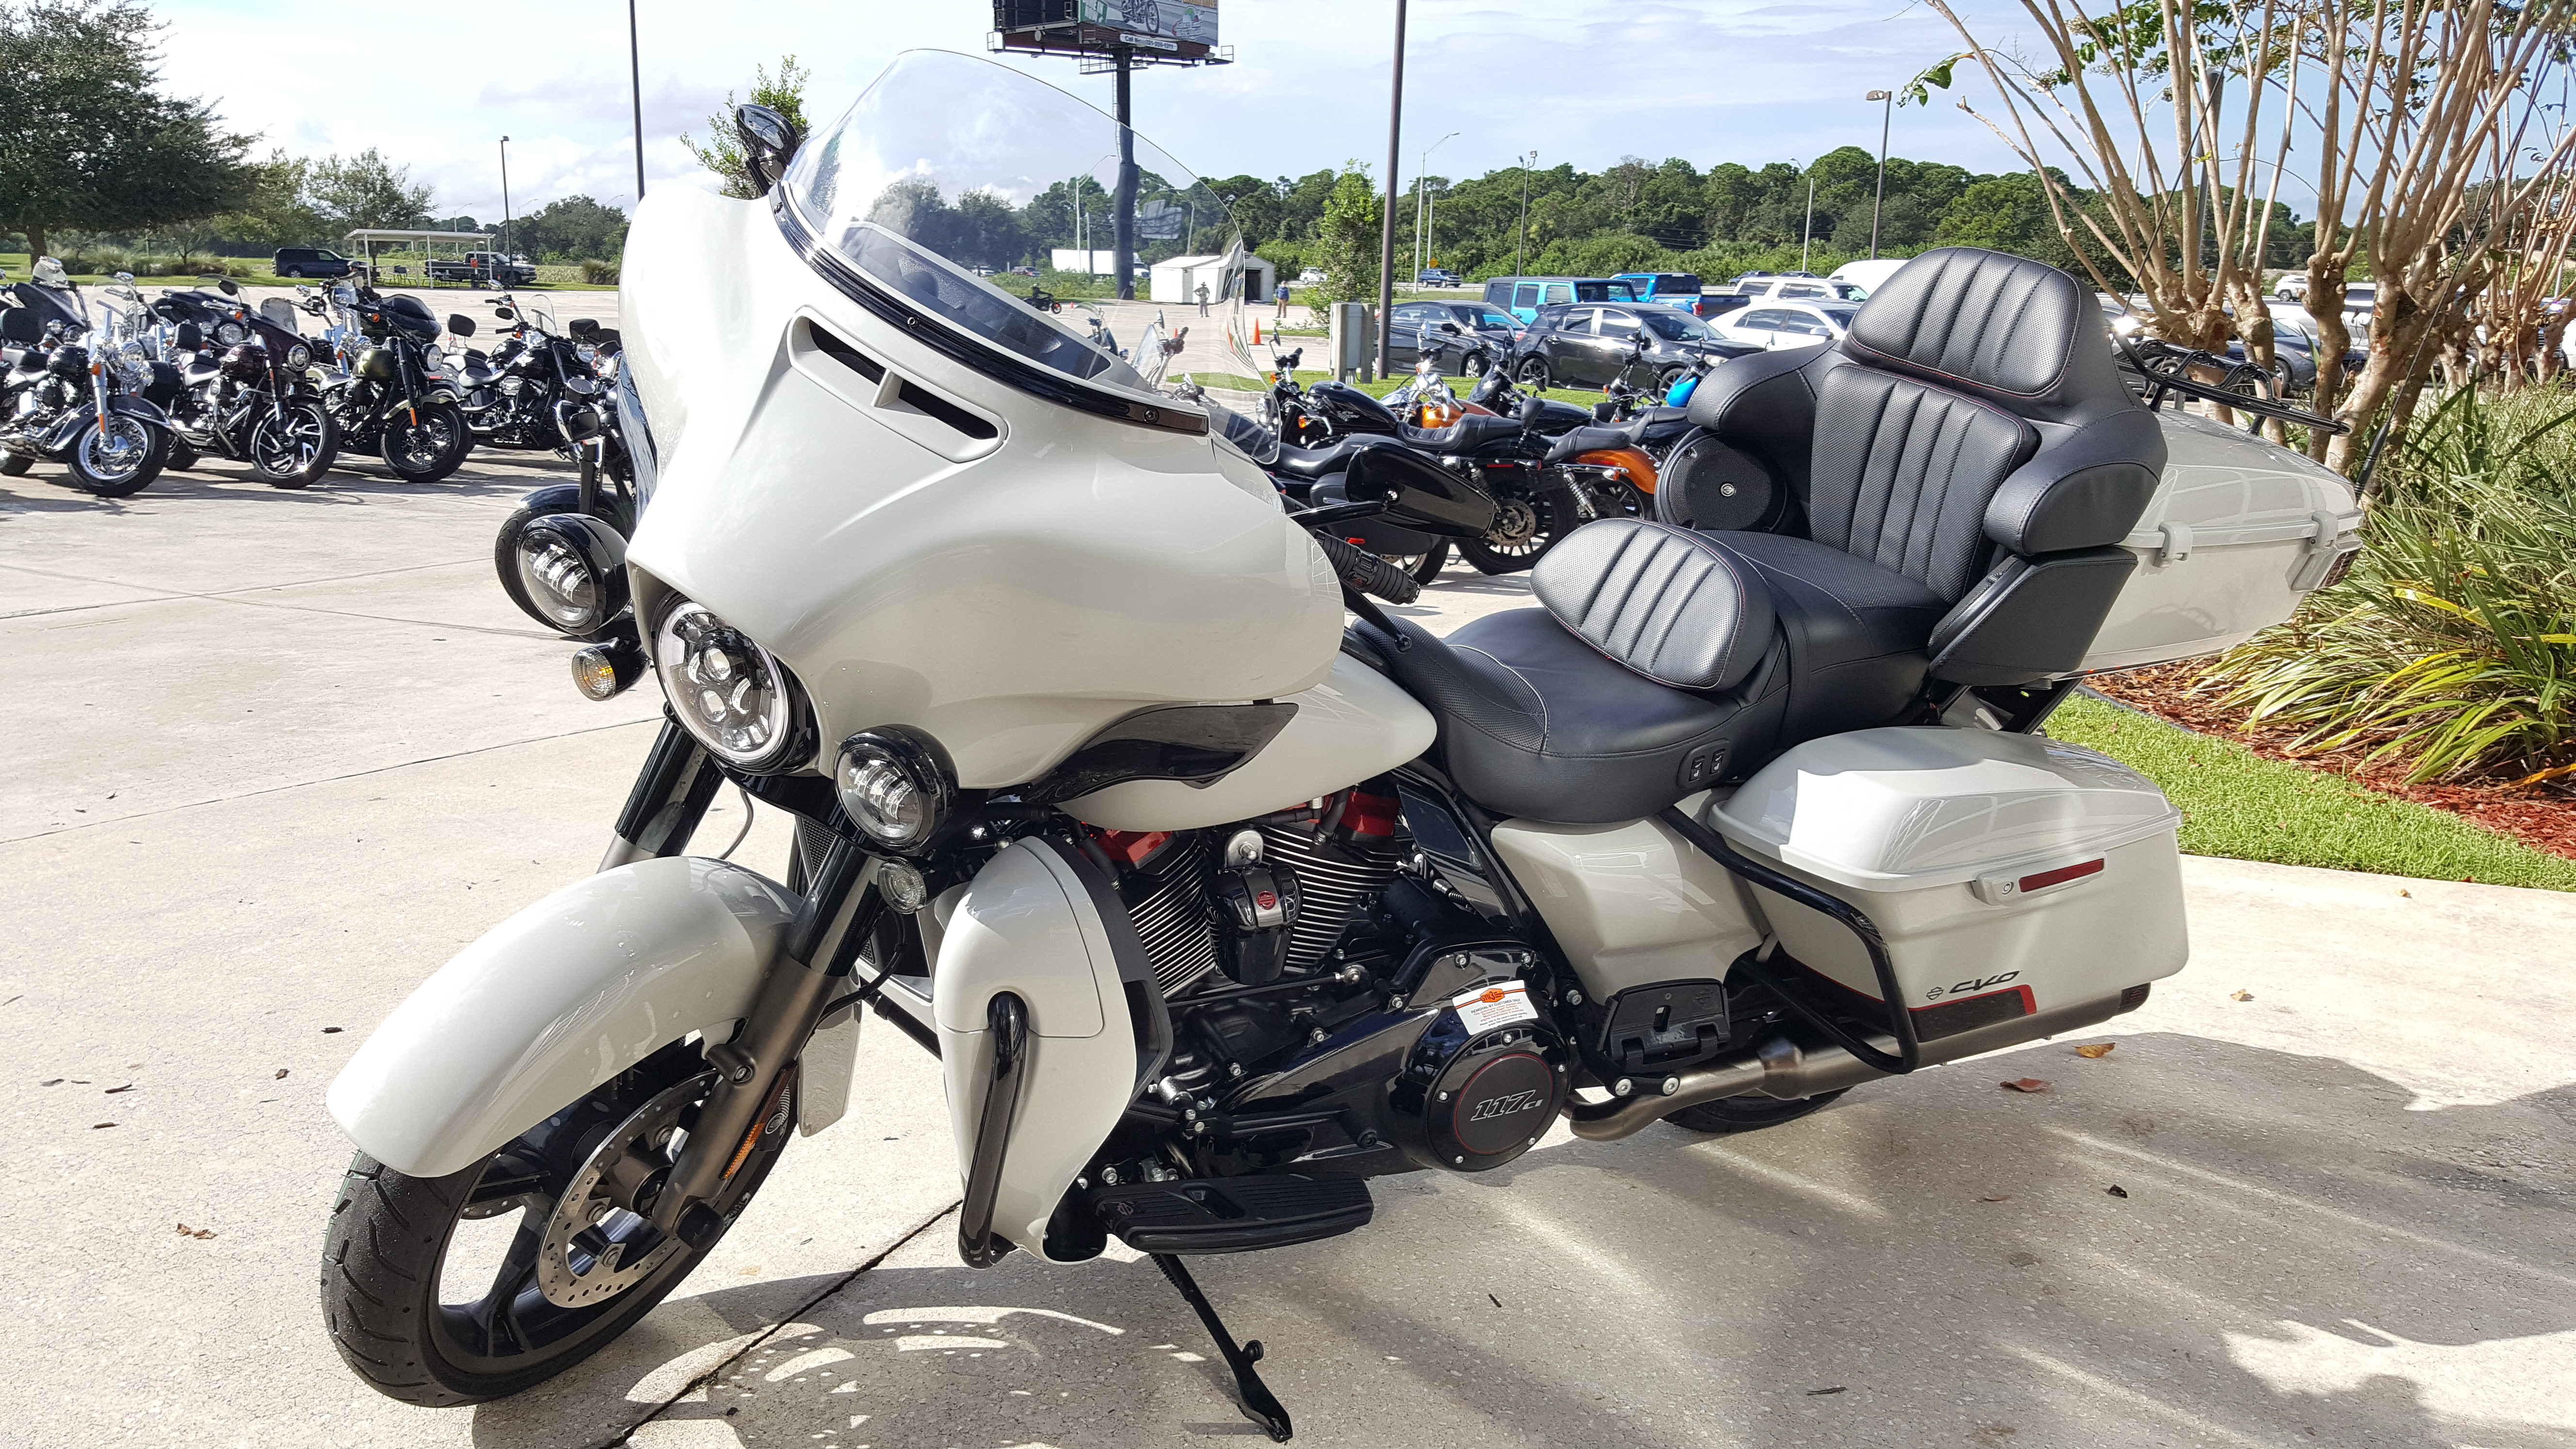 New 2020 Harley-Davidson CVO Limited in Palm Bay #950073 ...